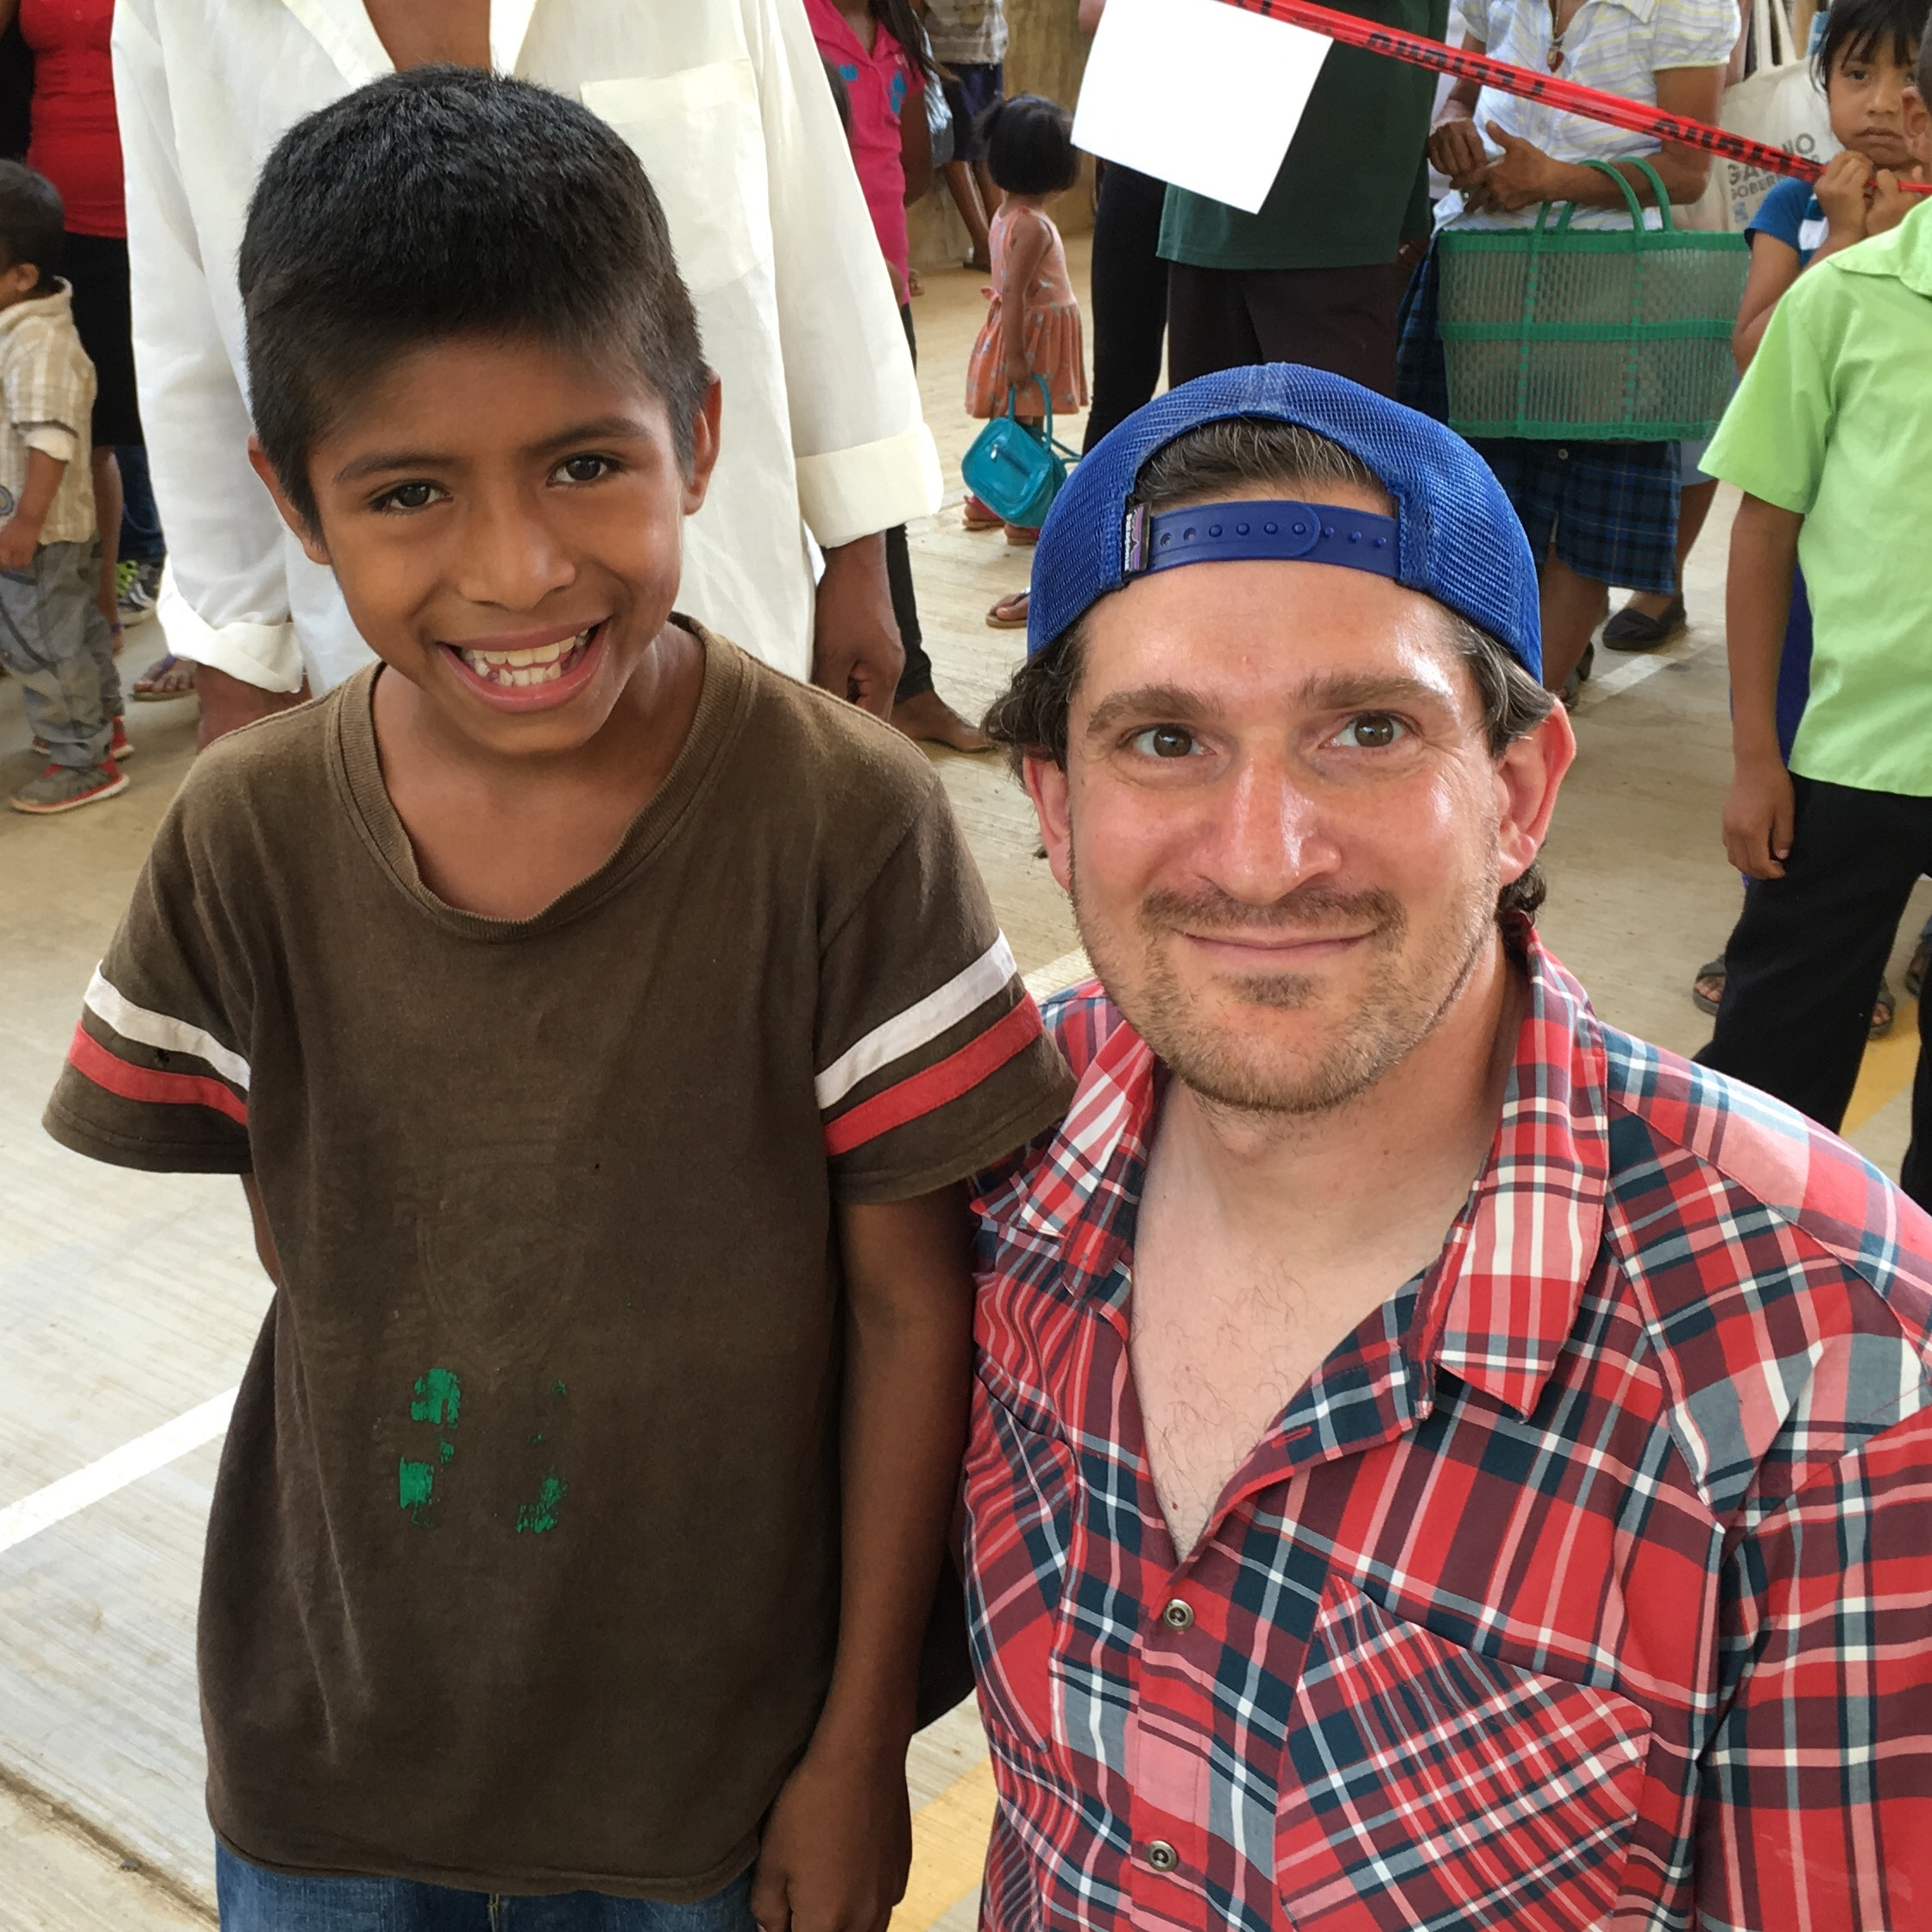 Simply Smiles President & Founder, Bryan Nurnberger with one of the children he encountered on his first trip to the Oaxacan villages. At the time, Rigoberto was suffering from severe parasitic infection. Pictured here at Thursday's clinic (5/26/16) Rigoberto is healthy and attending one of the schools Simply Smiles built in the region.